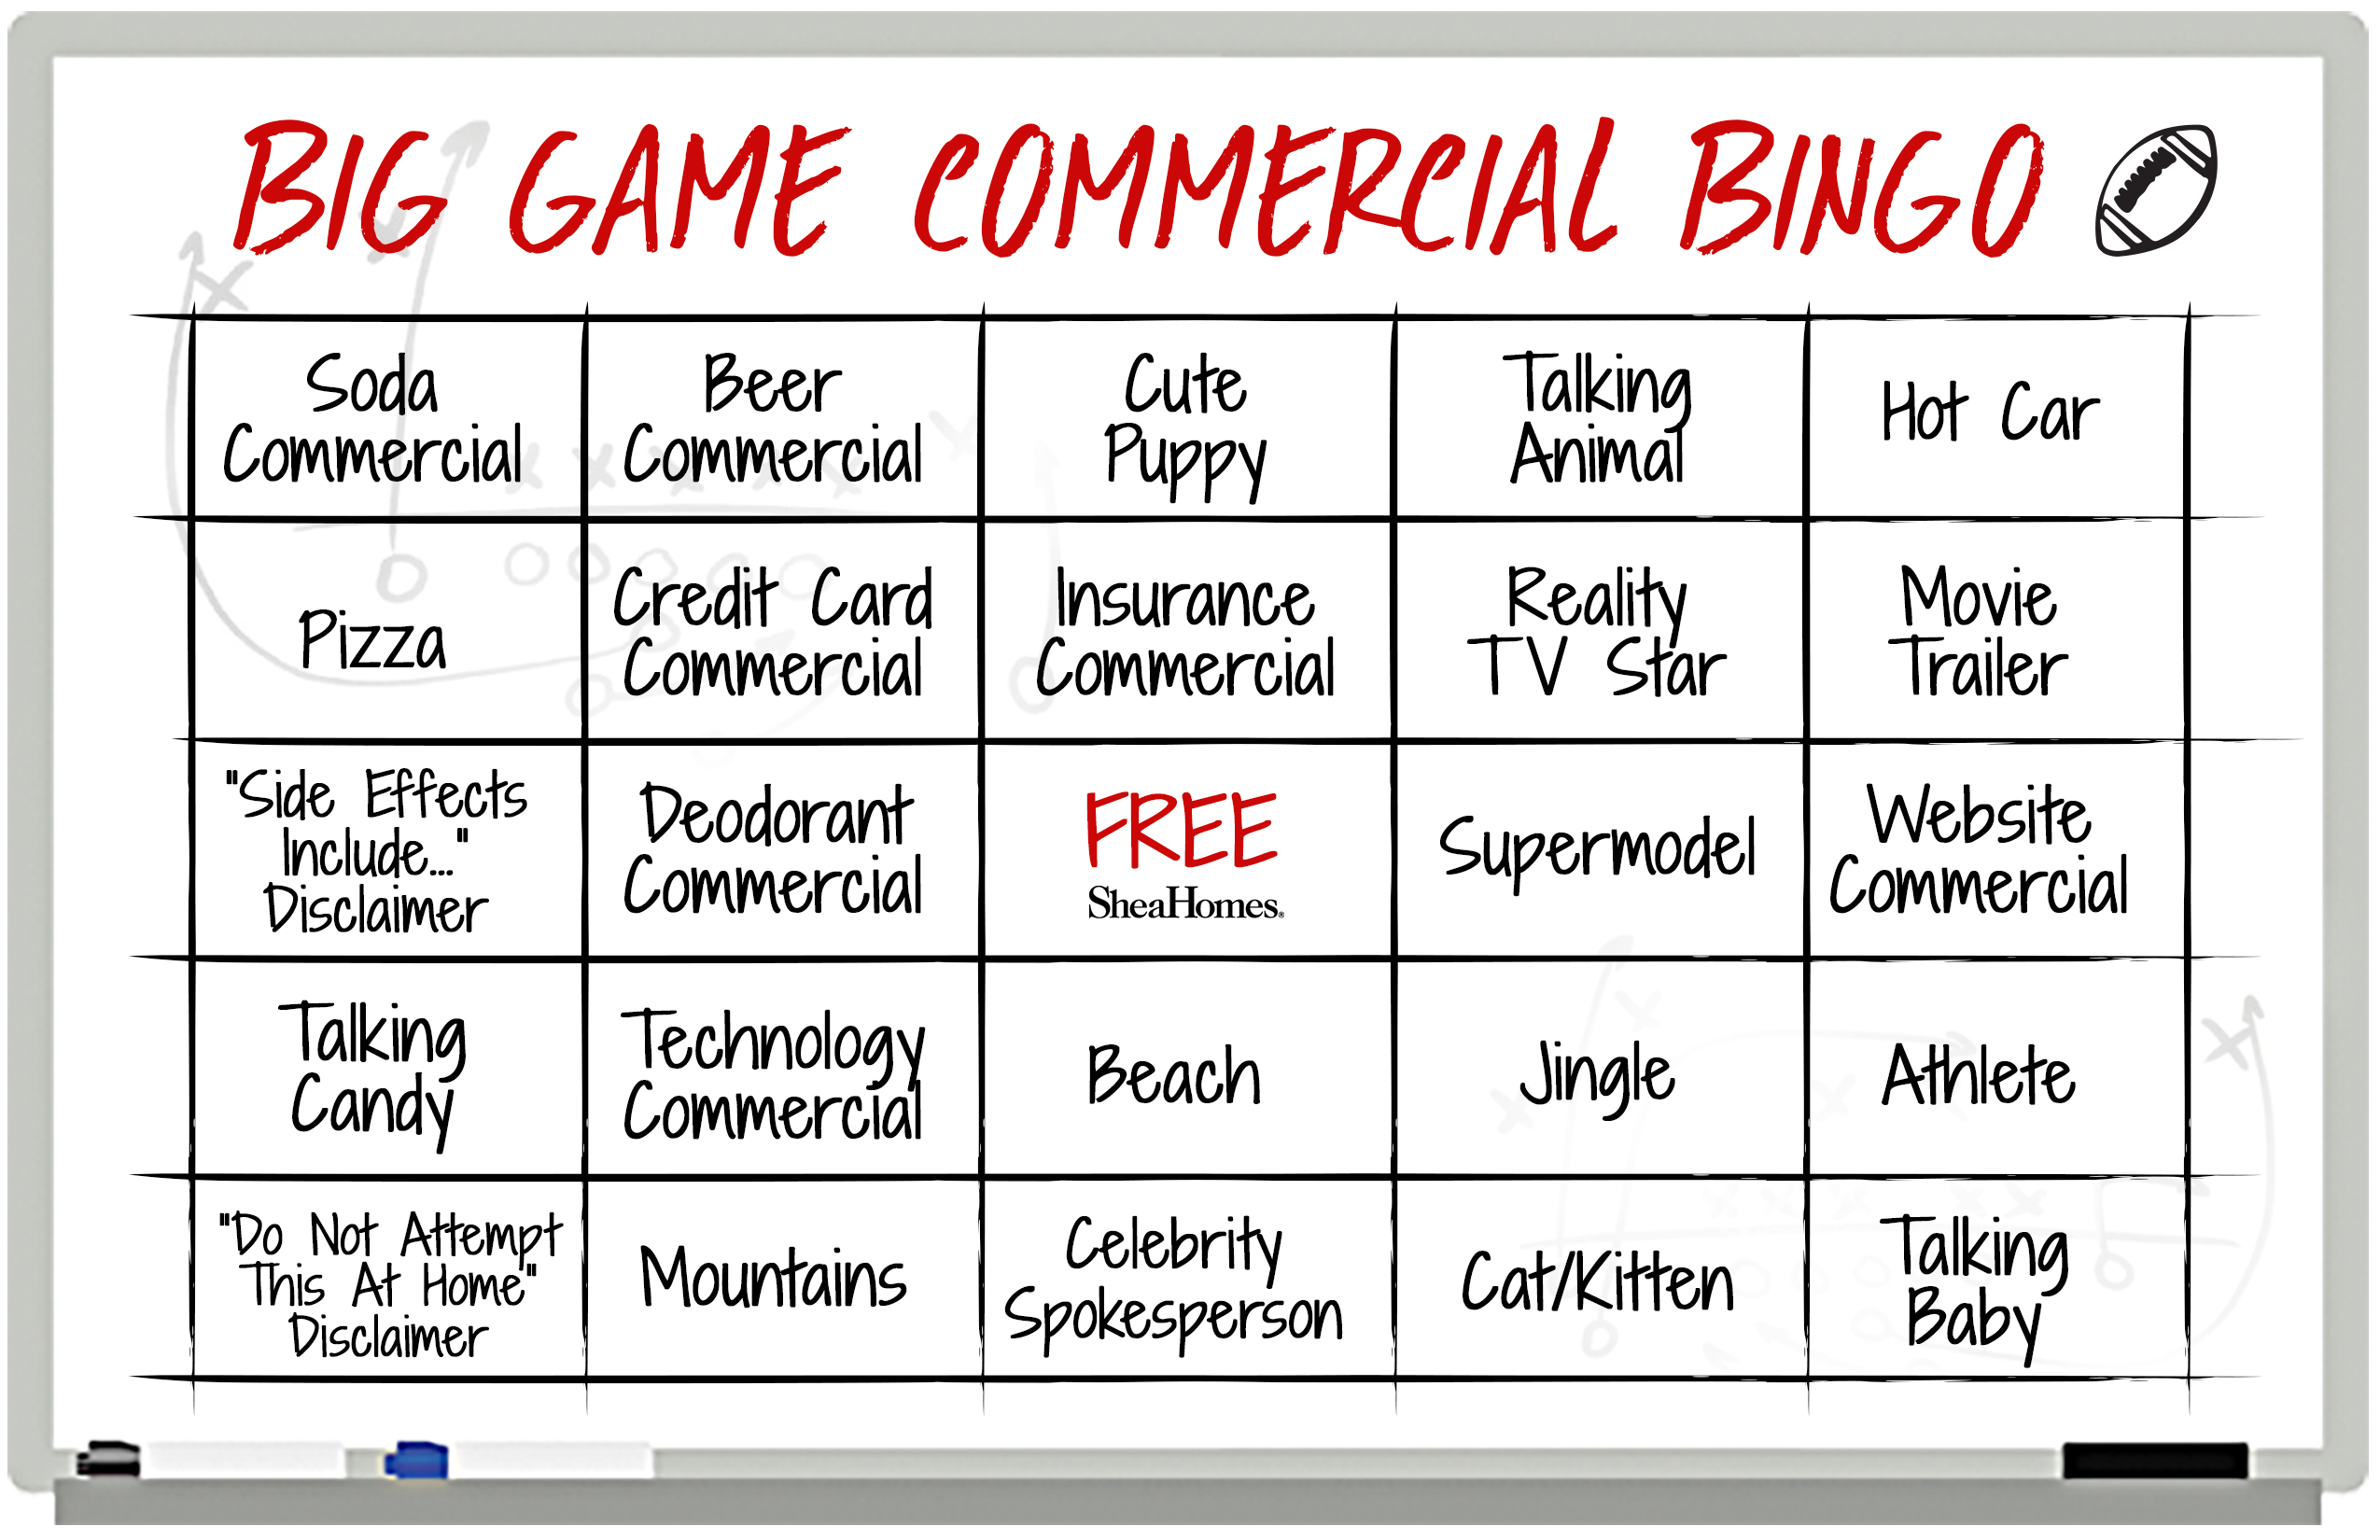 Big-Game-Commercial-Bingo